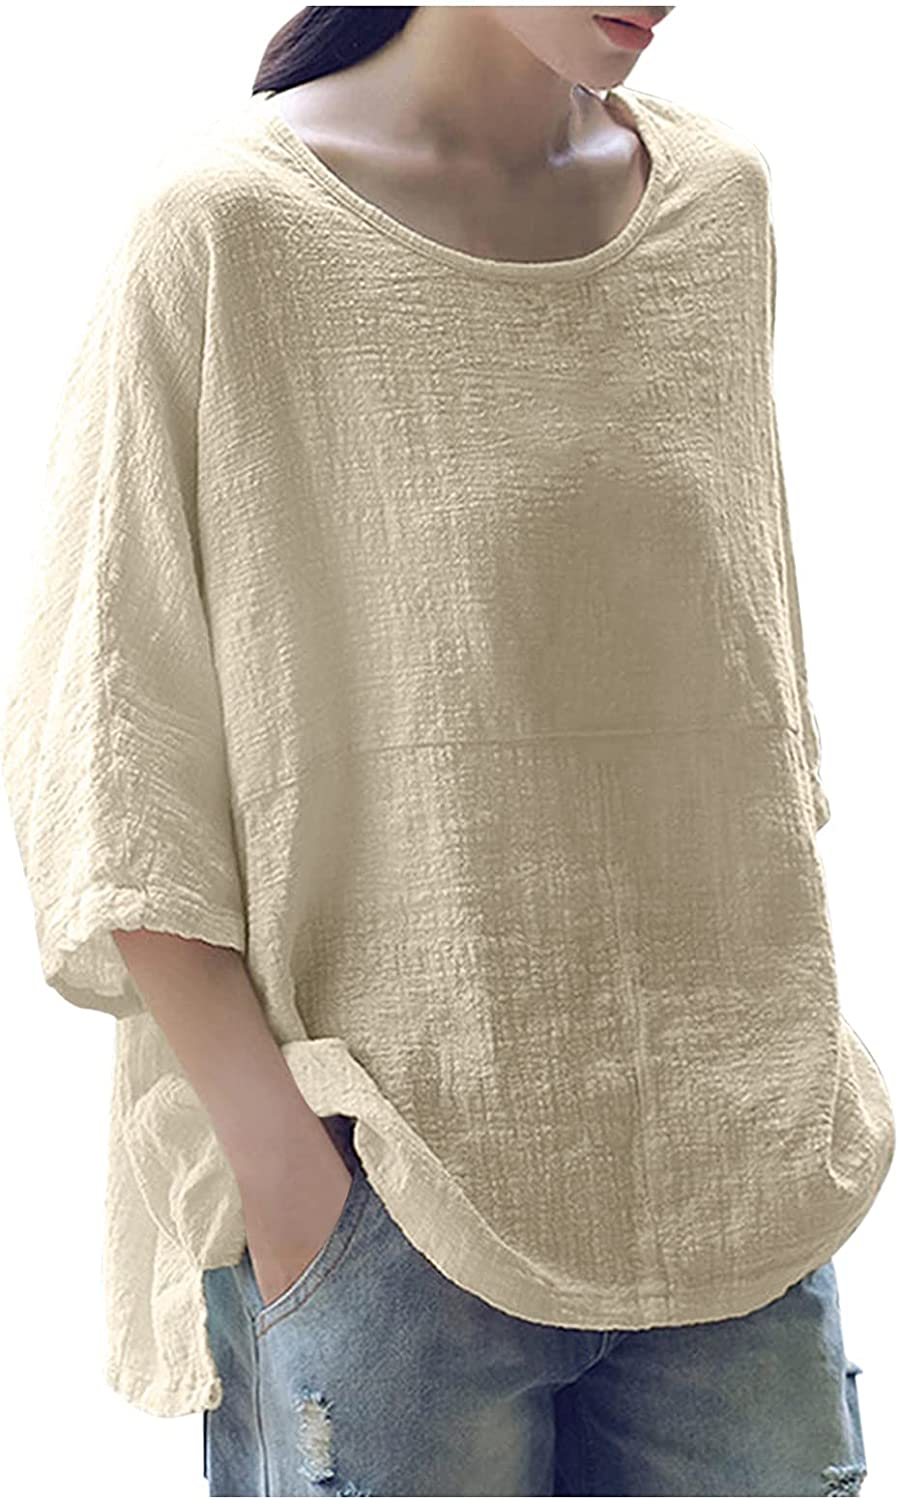 Womens Tops Plus Size Cotton Linen Tees Shirts 3/4 Sleeve Round Collar Loose Fit Summer Casual Tunic Shirts Blouses